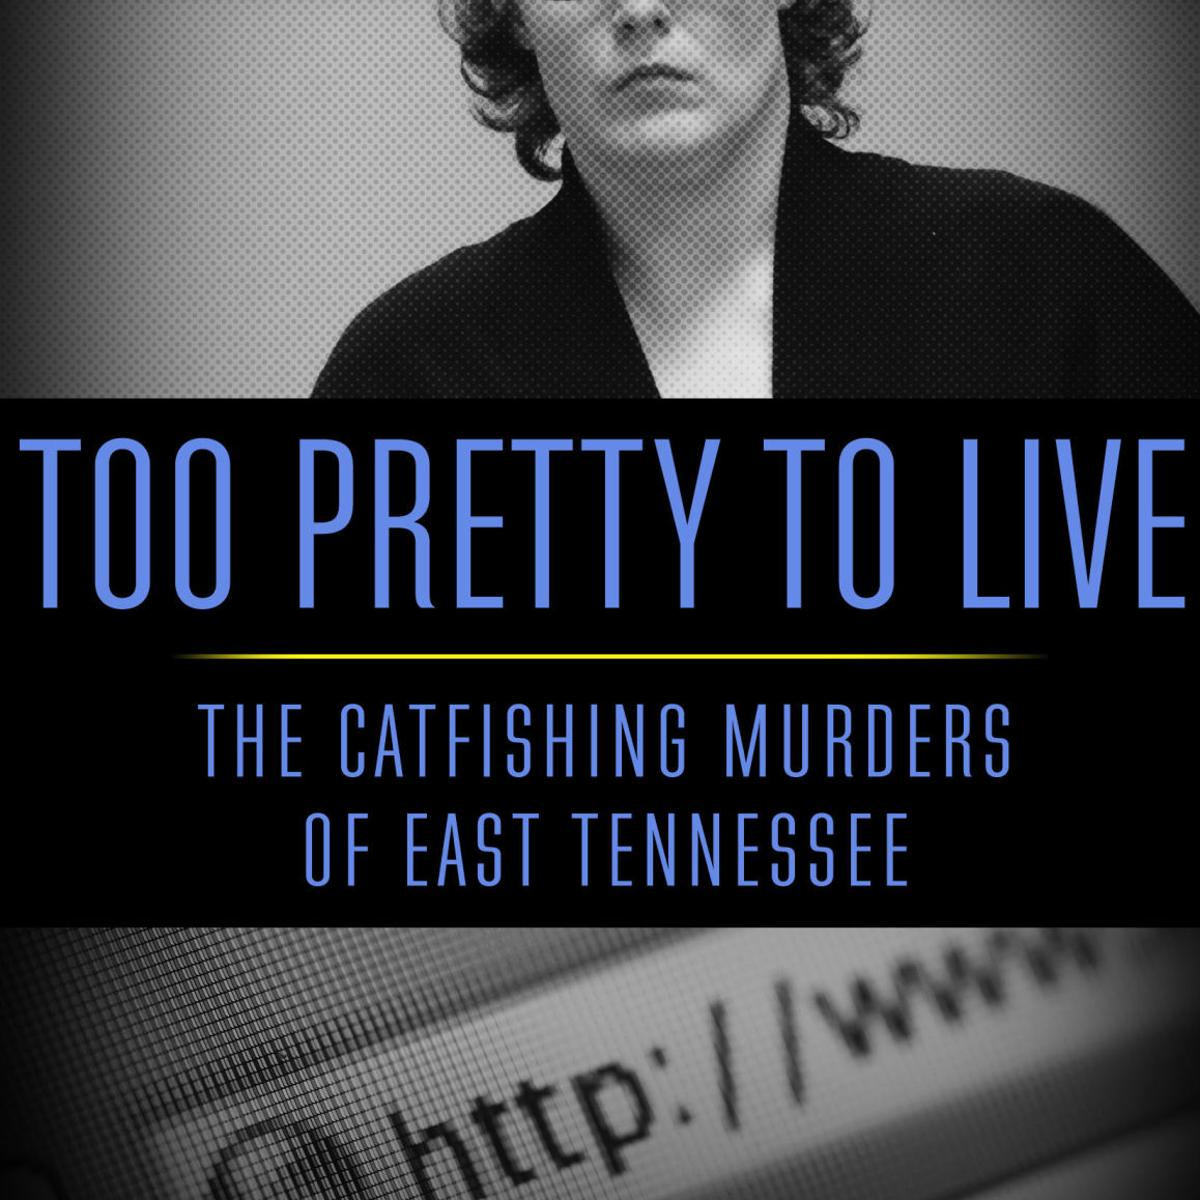 Story of Mountain City Facebook murders reaches national audience in